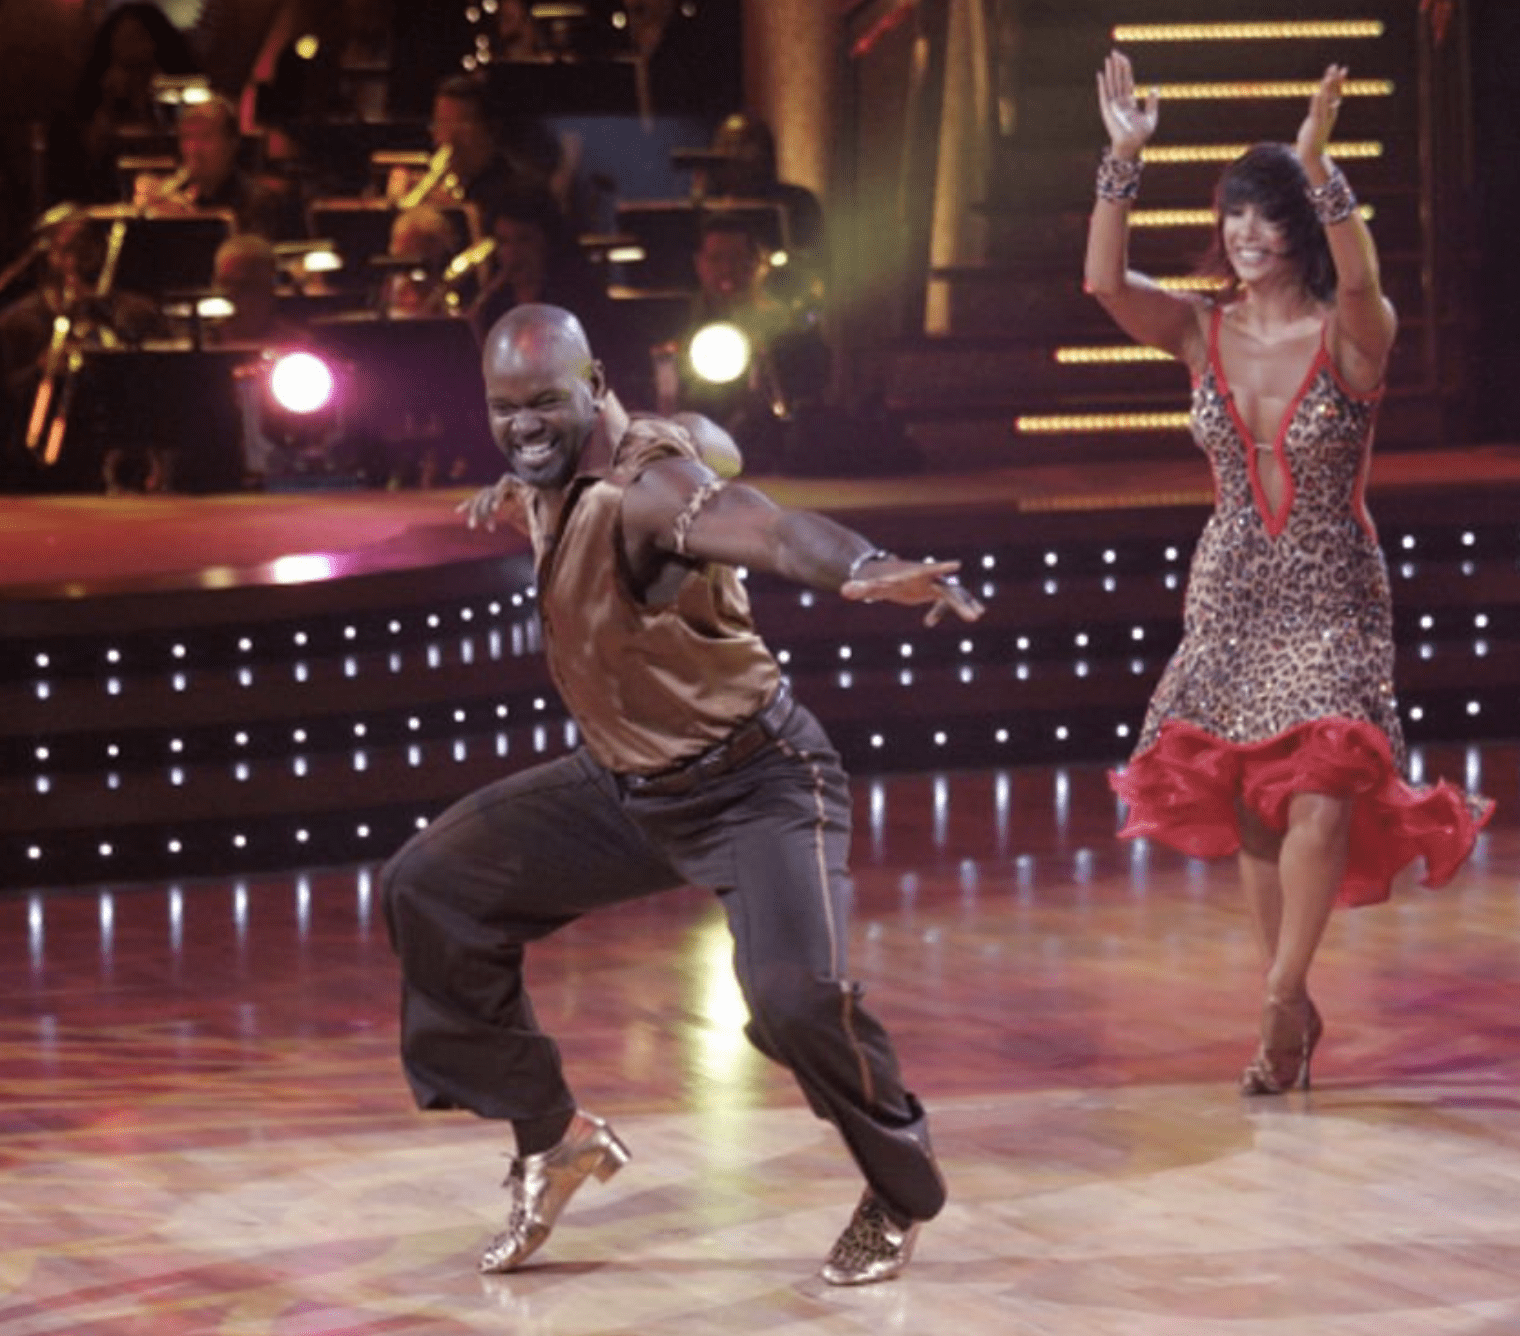 Emmitt Smith Dancing With the Cowboys